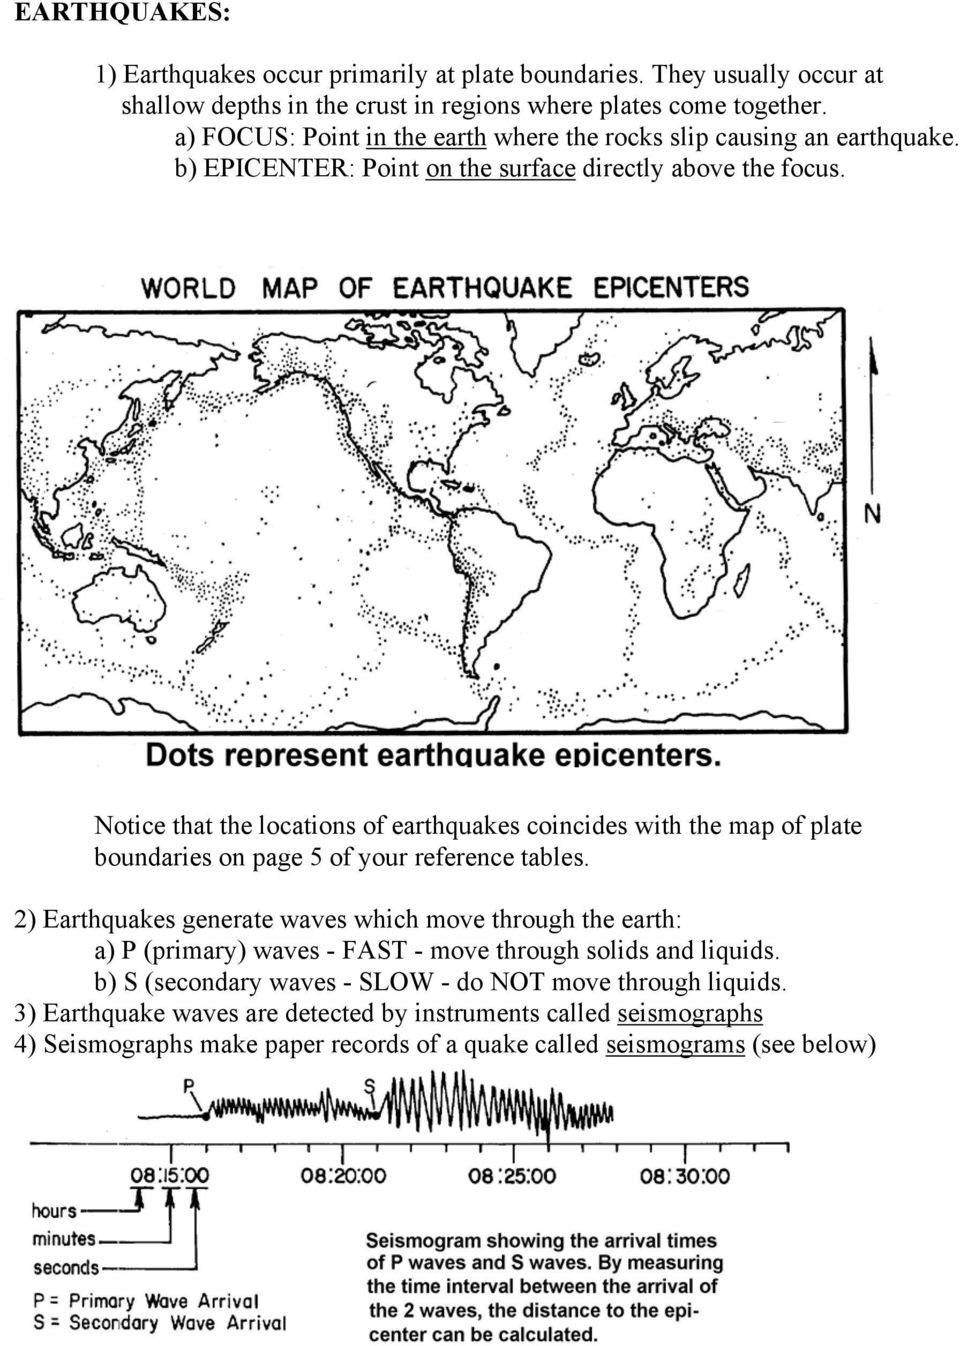 Notice that the locations of earthquakes coincides with the map of plate boundaries on page 5 of your reference tables.